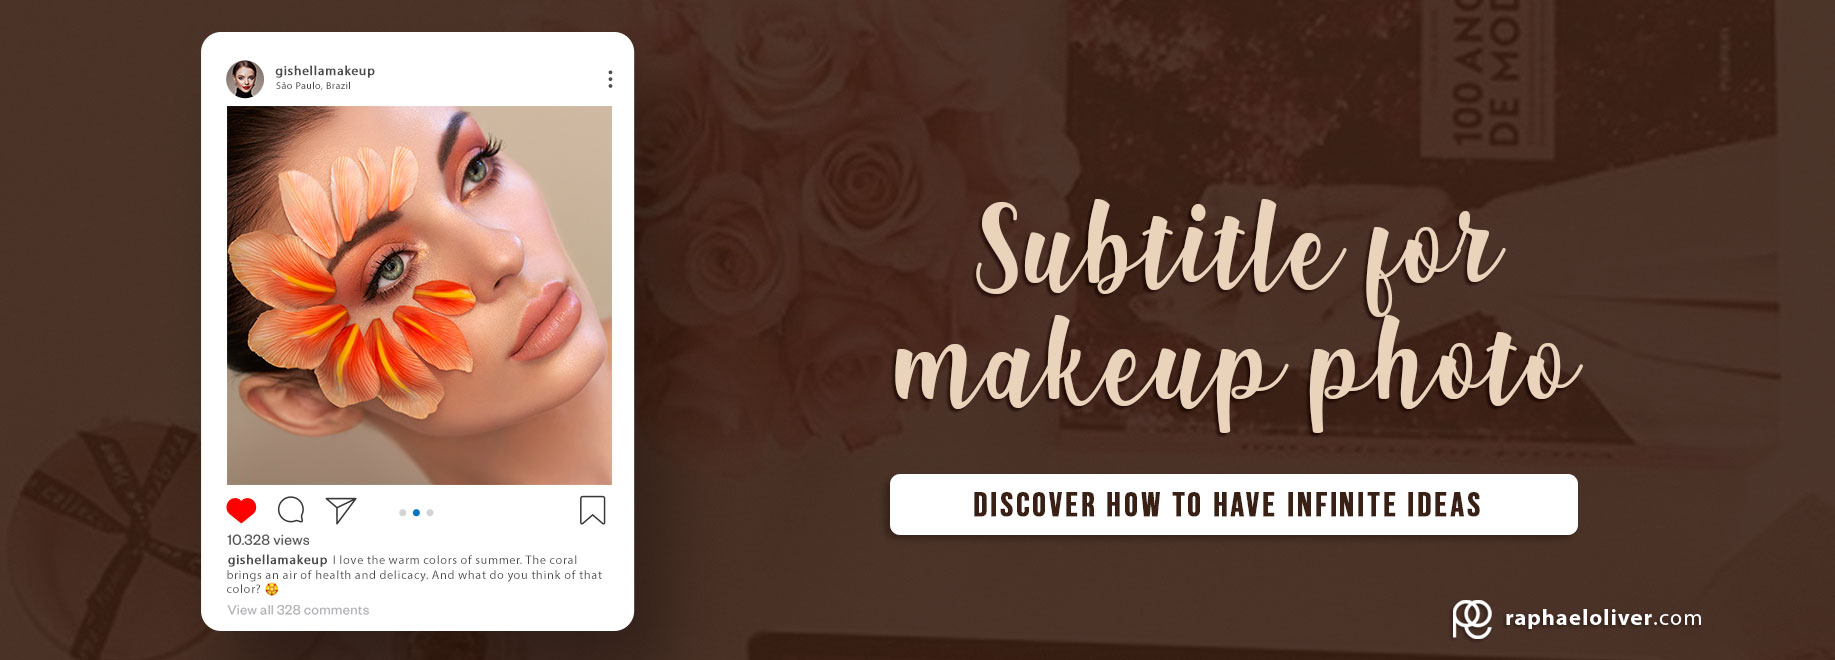 9 caption tips for makeup photo: See how to use it to interact in the best way.